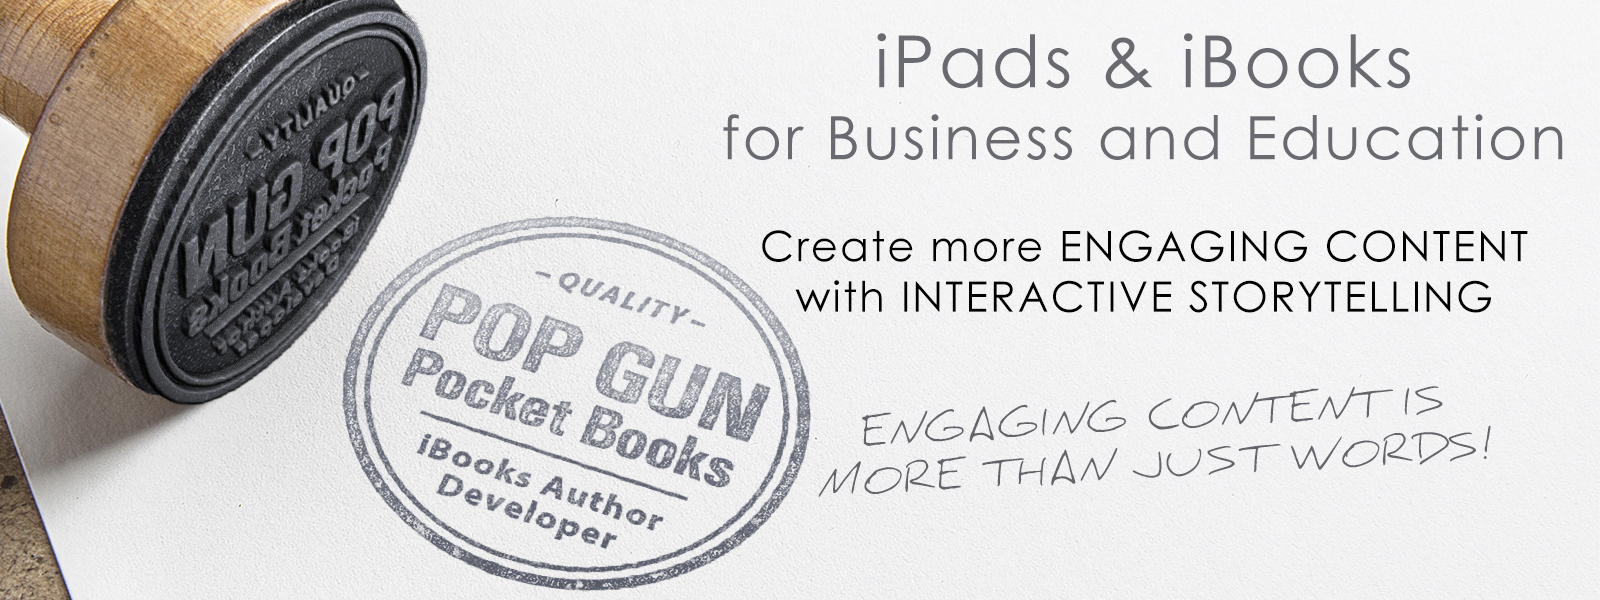 iPads for Business and Education. iBooks Author